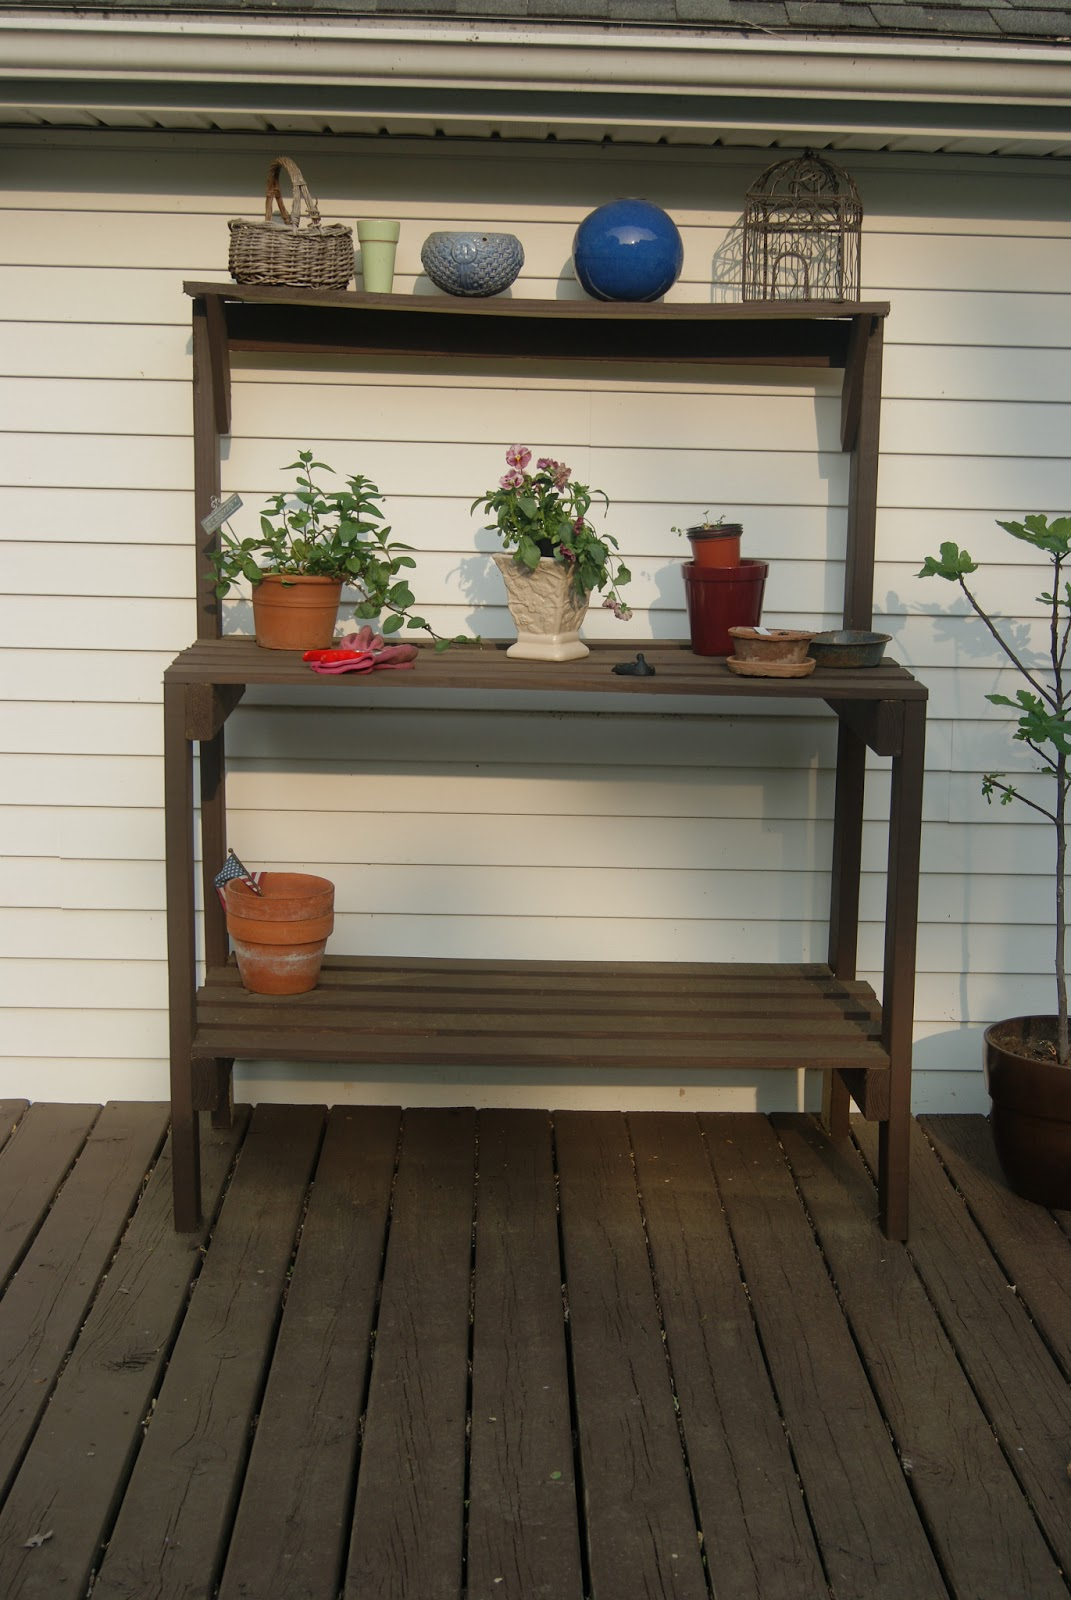 Super The Boulevard Market Life Build Your Own Potting Bench Gmtry Best Dining Table And Chair Ideas Images Gmtryco